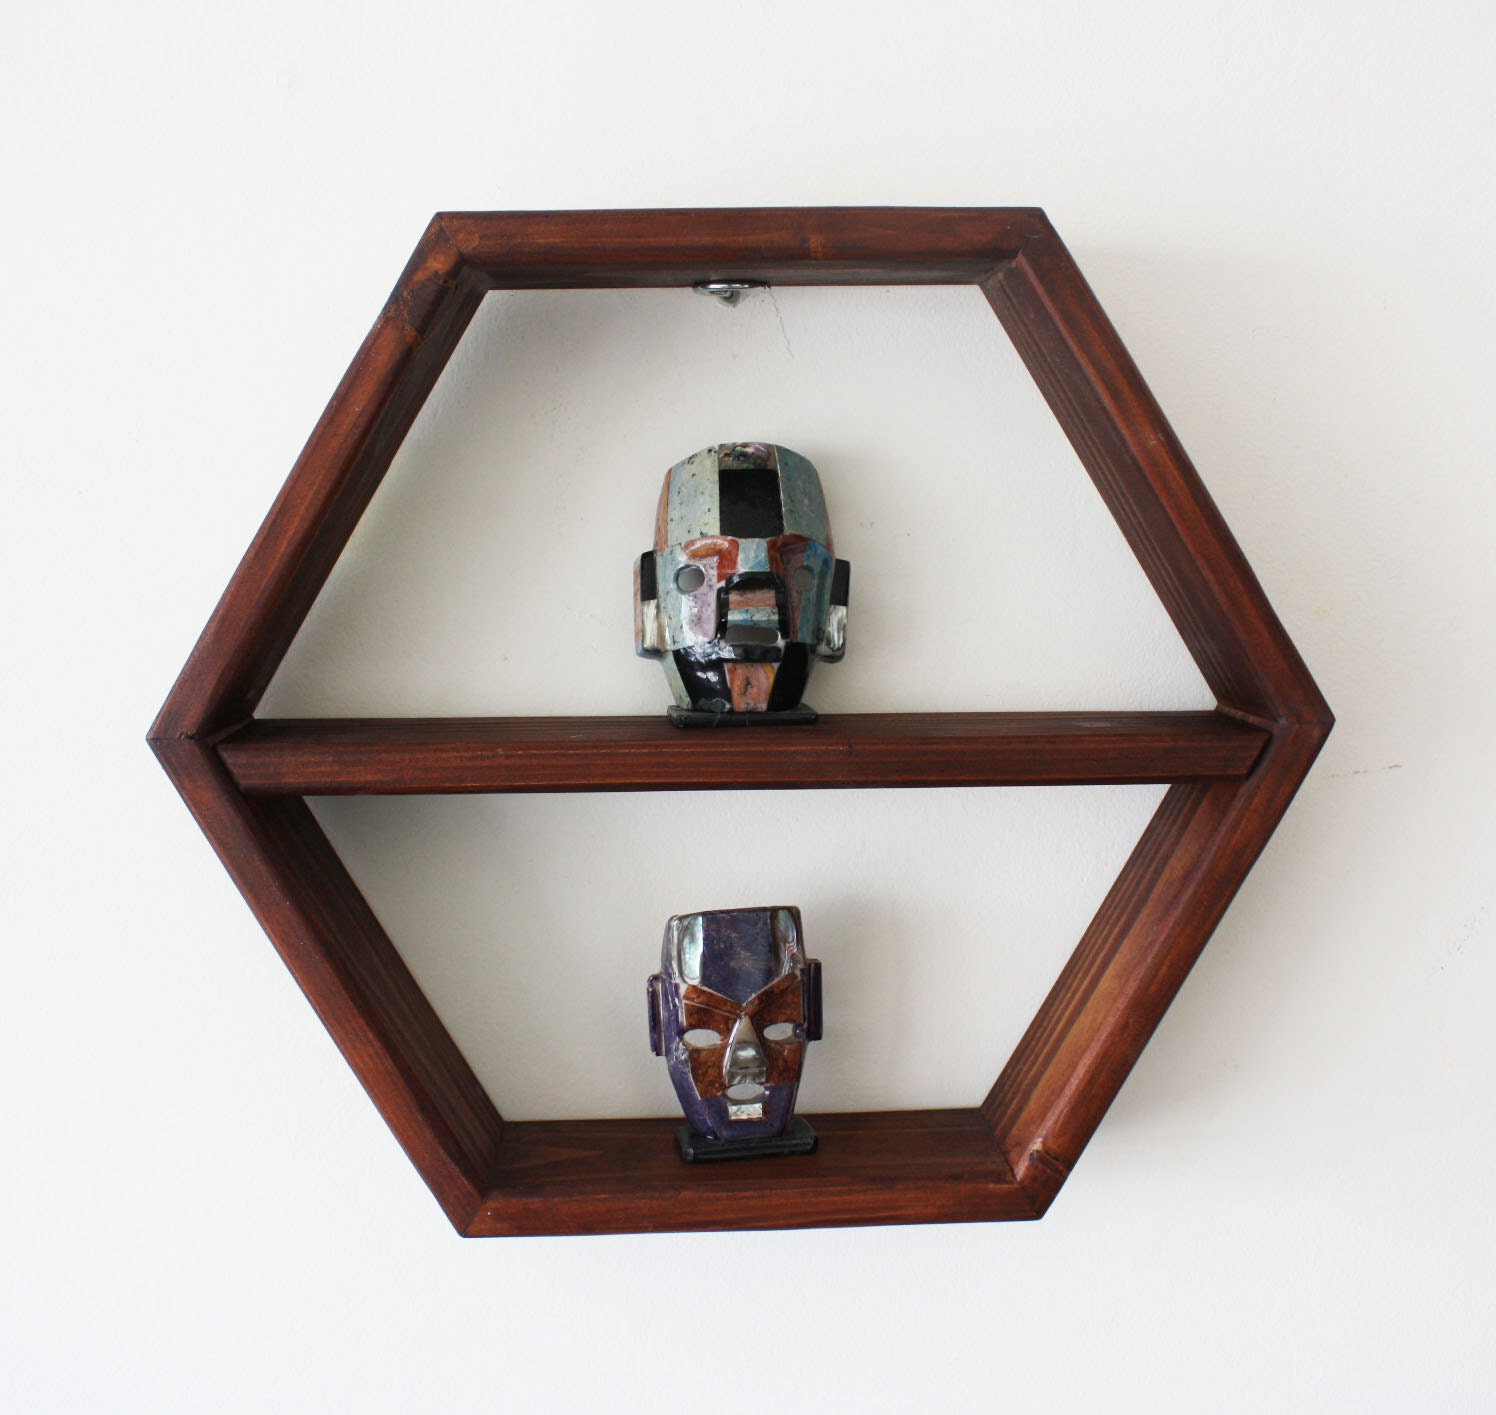 Honeycomb Shelves Hexagonal Shelves Geometical Shelves